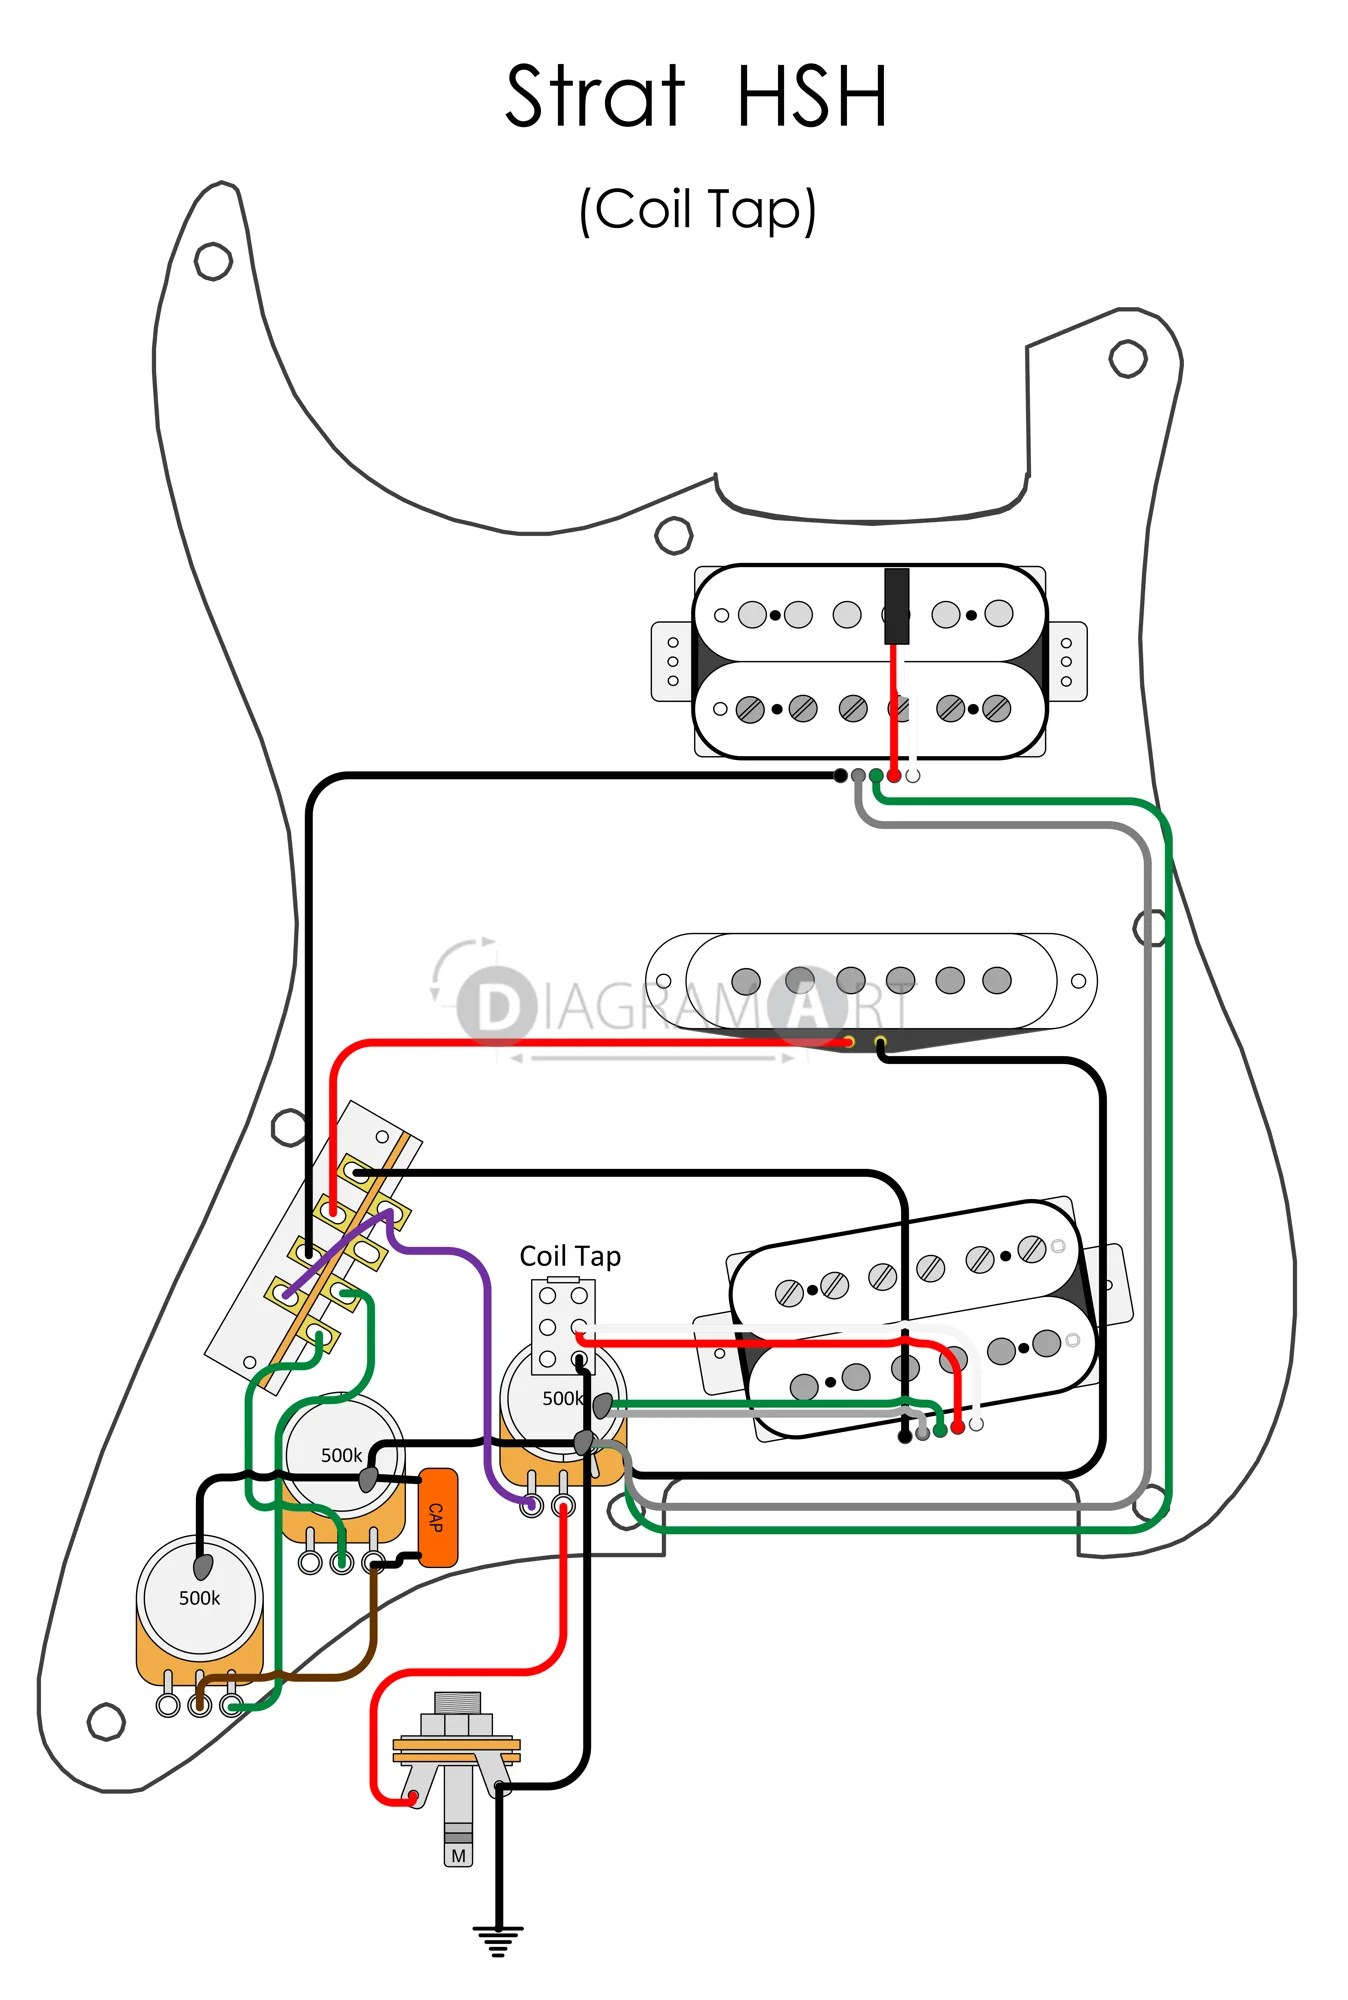 small resolution of hsh wiring diagram wiring diagrams lolstrat wiring diagram hsh today wiring diagram update seymour duncan hsh